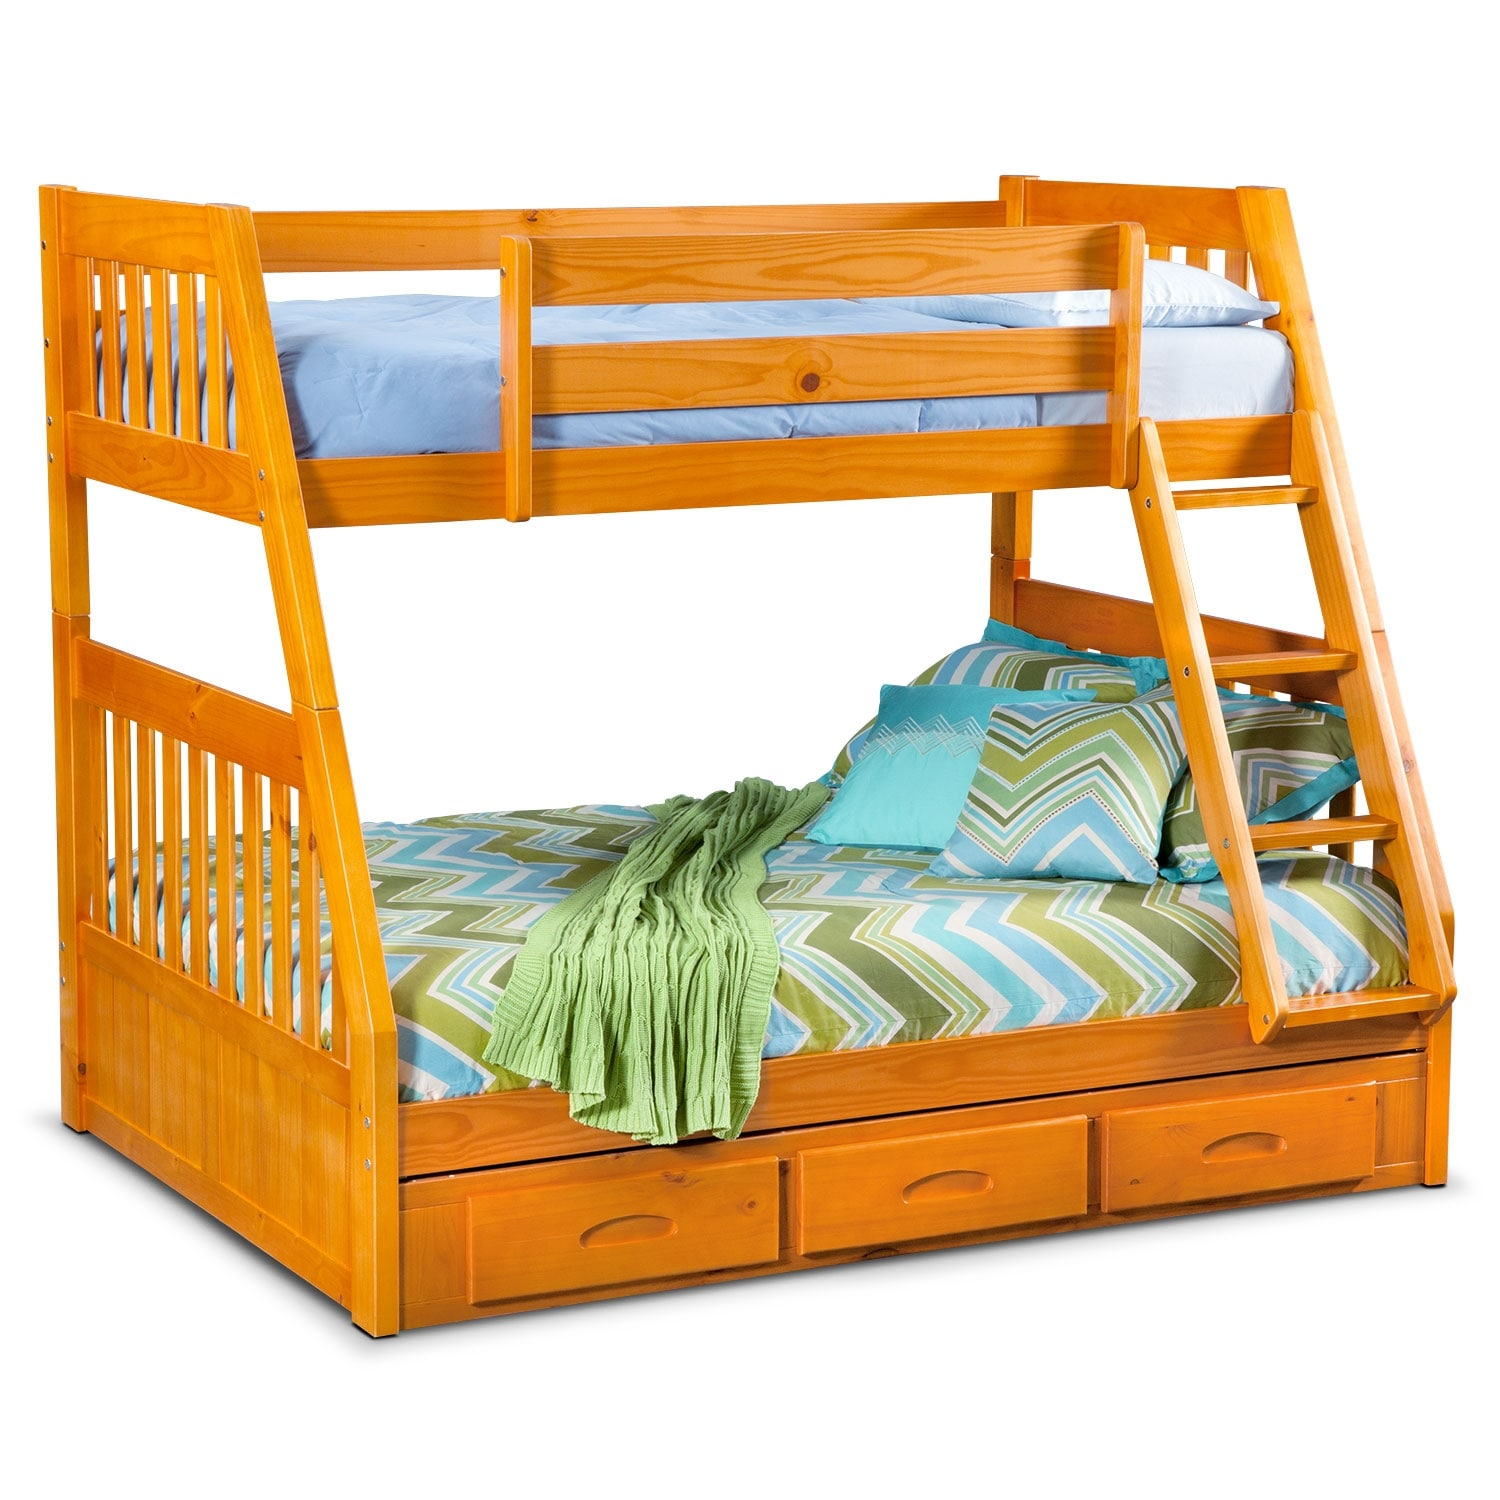 Ranger Pine Twin/Full Bunk Bed w/ Storage